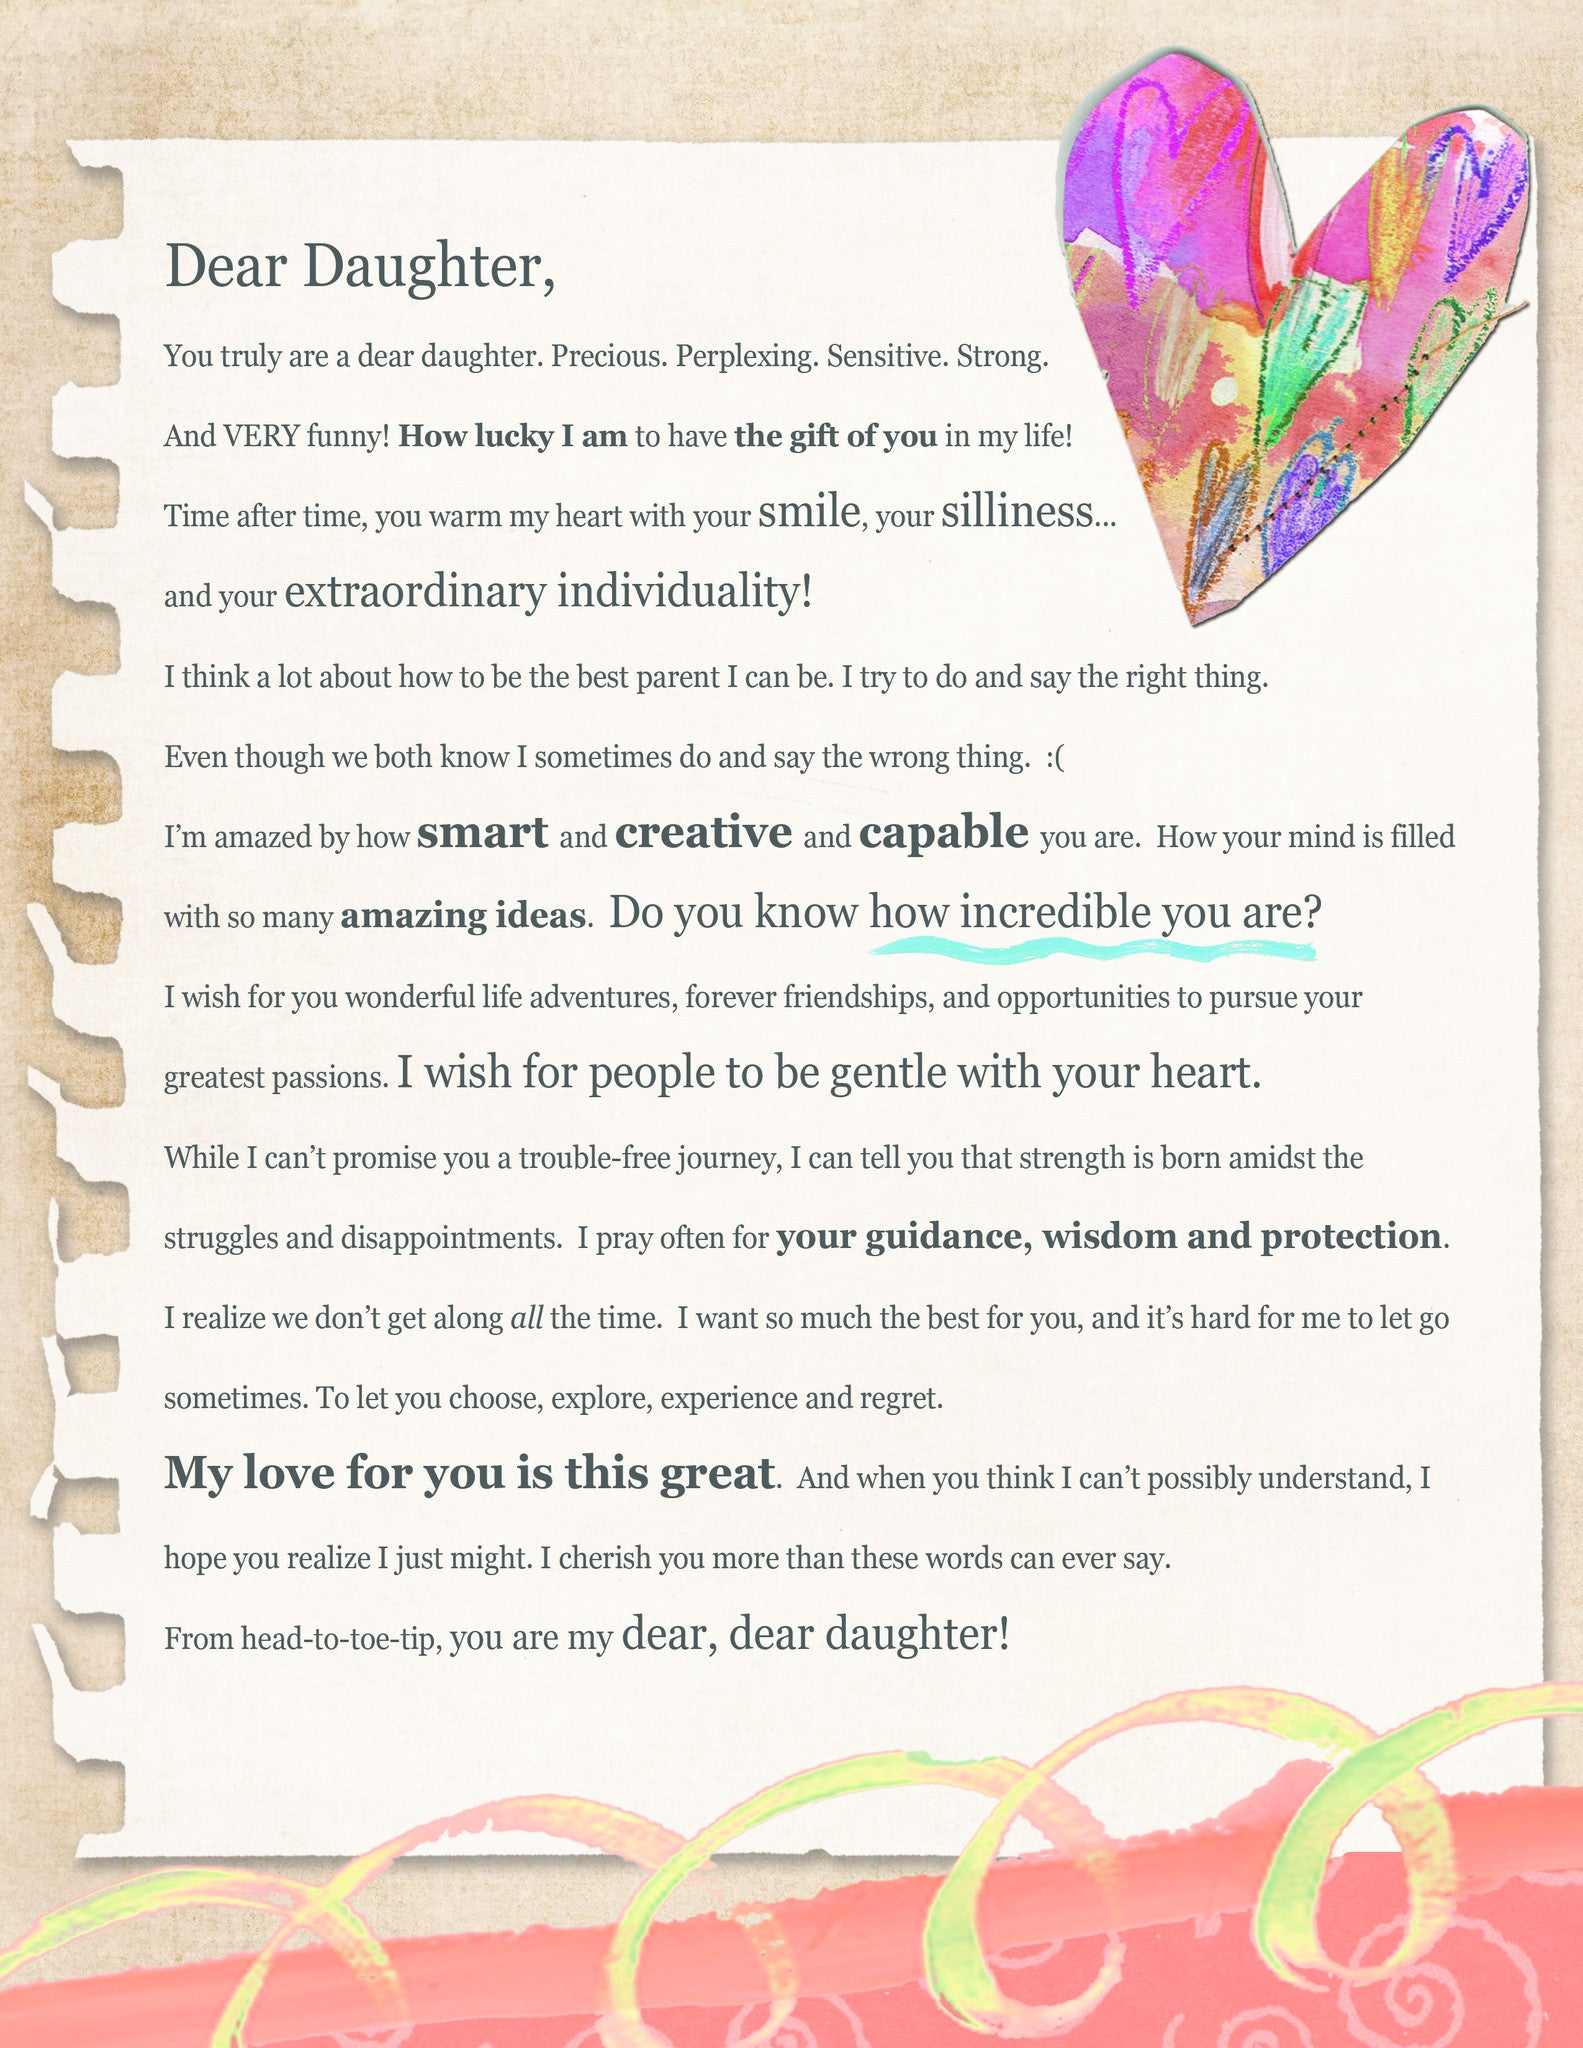 LOVE LETTER - Dear Daughter (Digital Download)